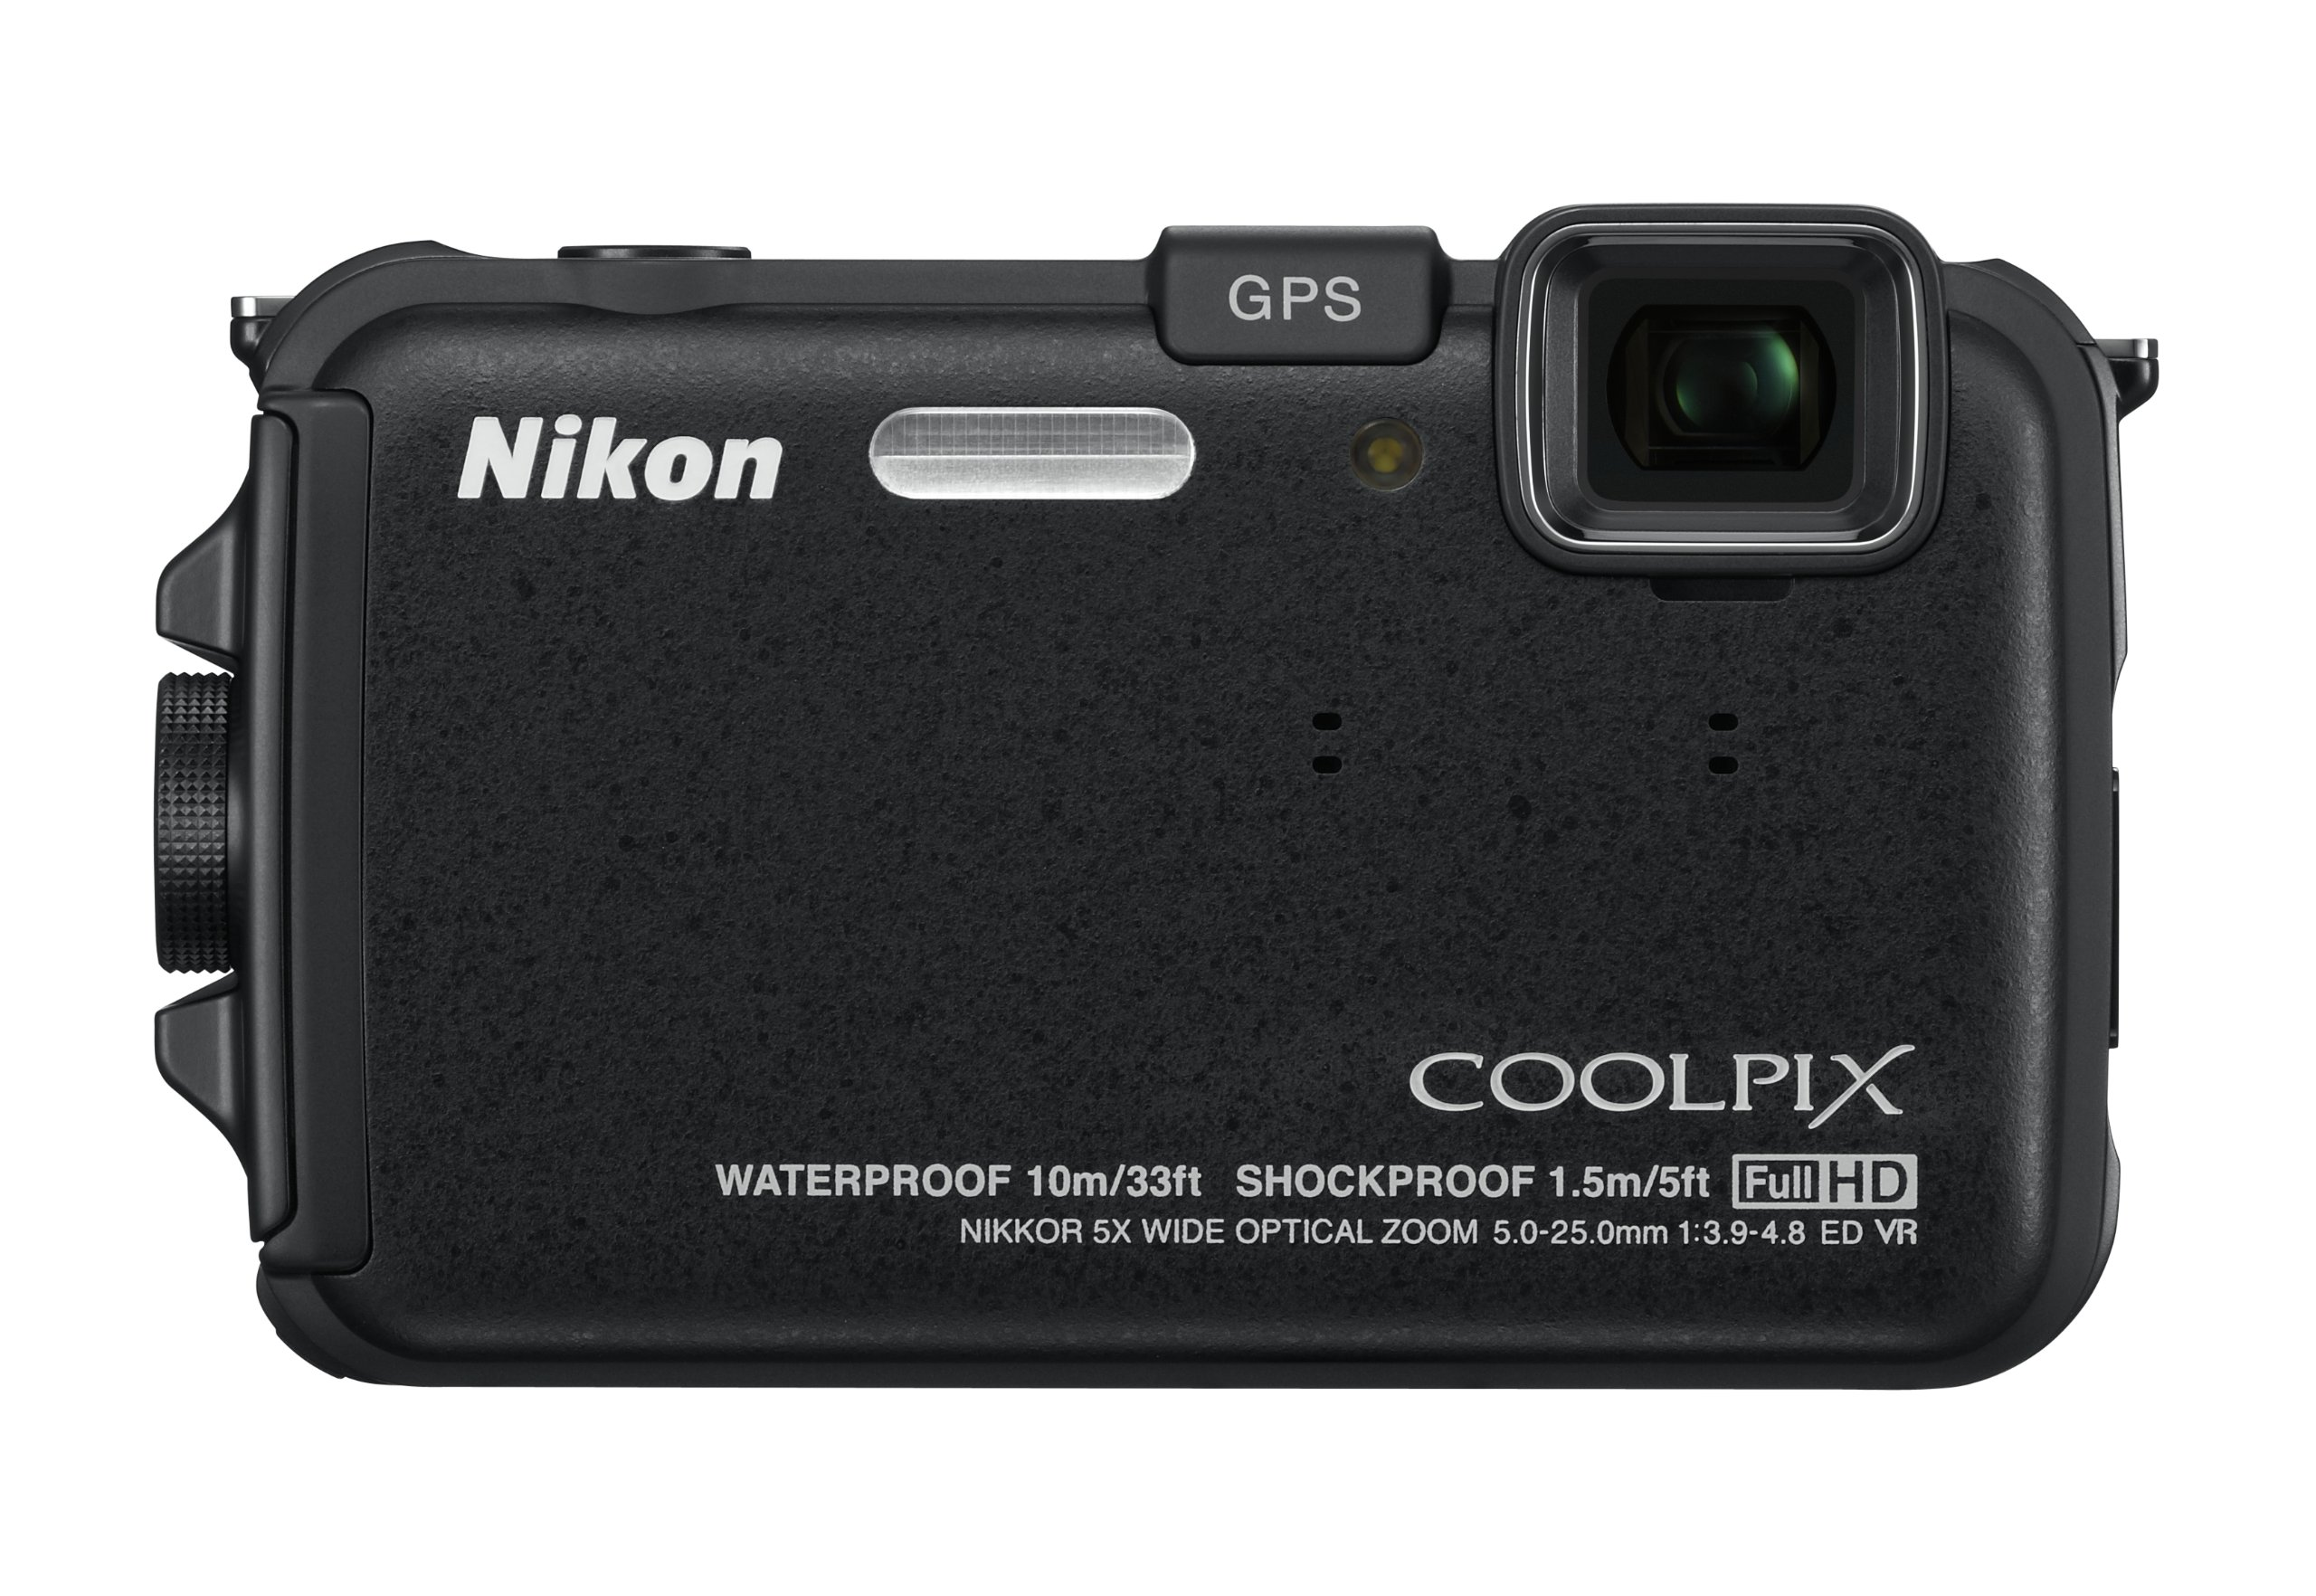 Nikon COOLPIX AW100 16 MP CMOS Waterproof Digital Camera with GPS and Full HD 1080p Video (Black) by Nikon